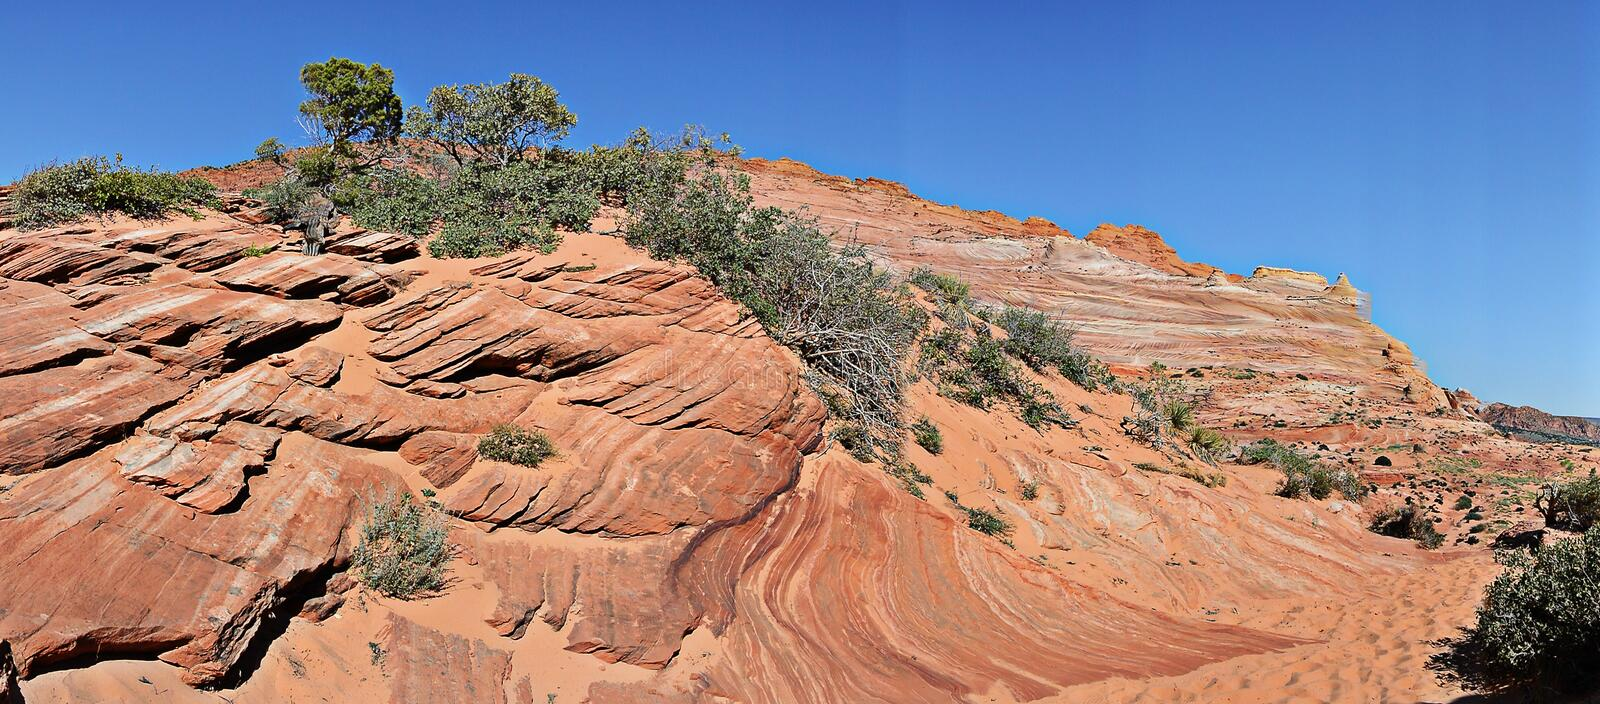 The Wave - Coyote Buttes South royalty free stock photo